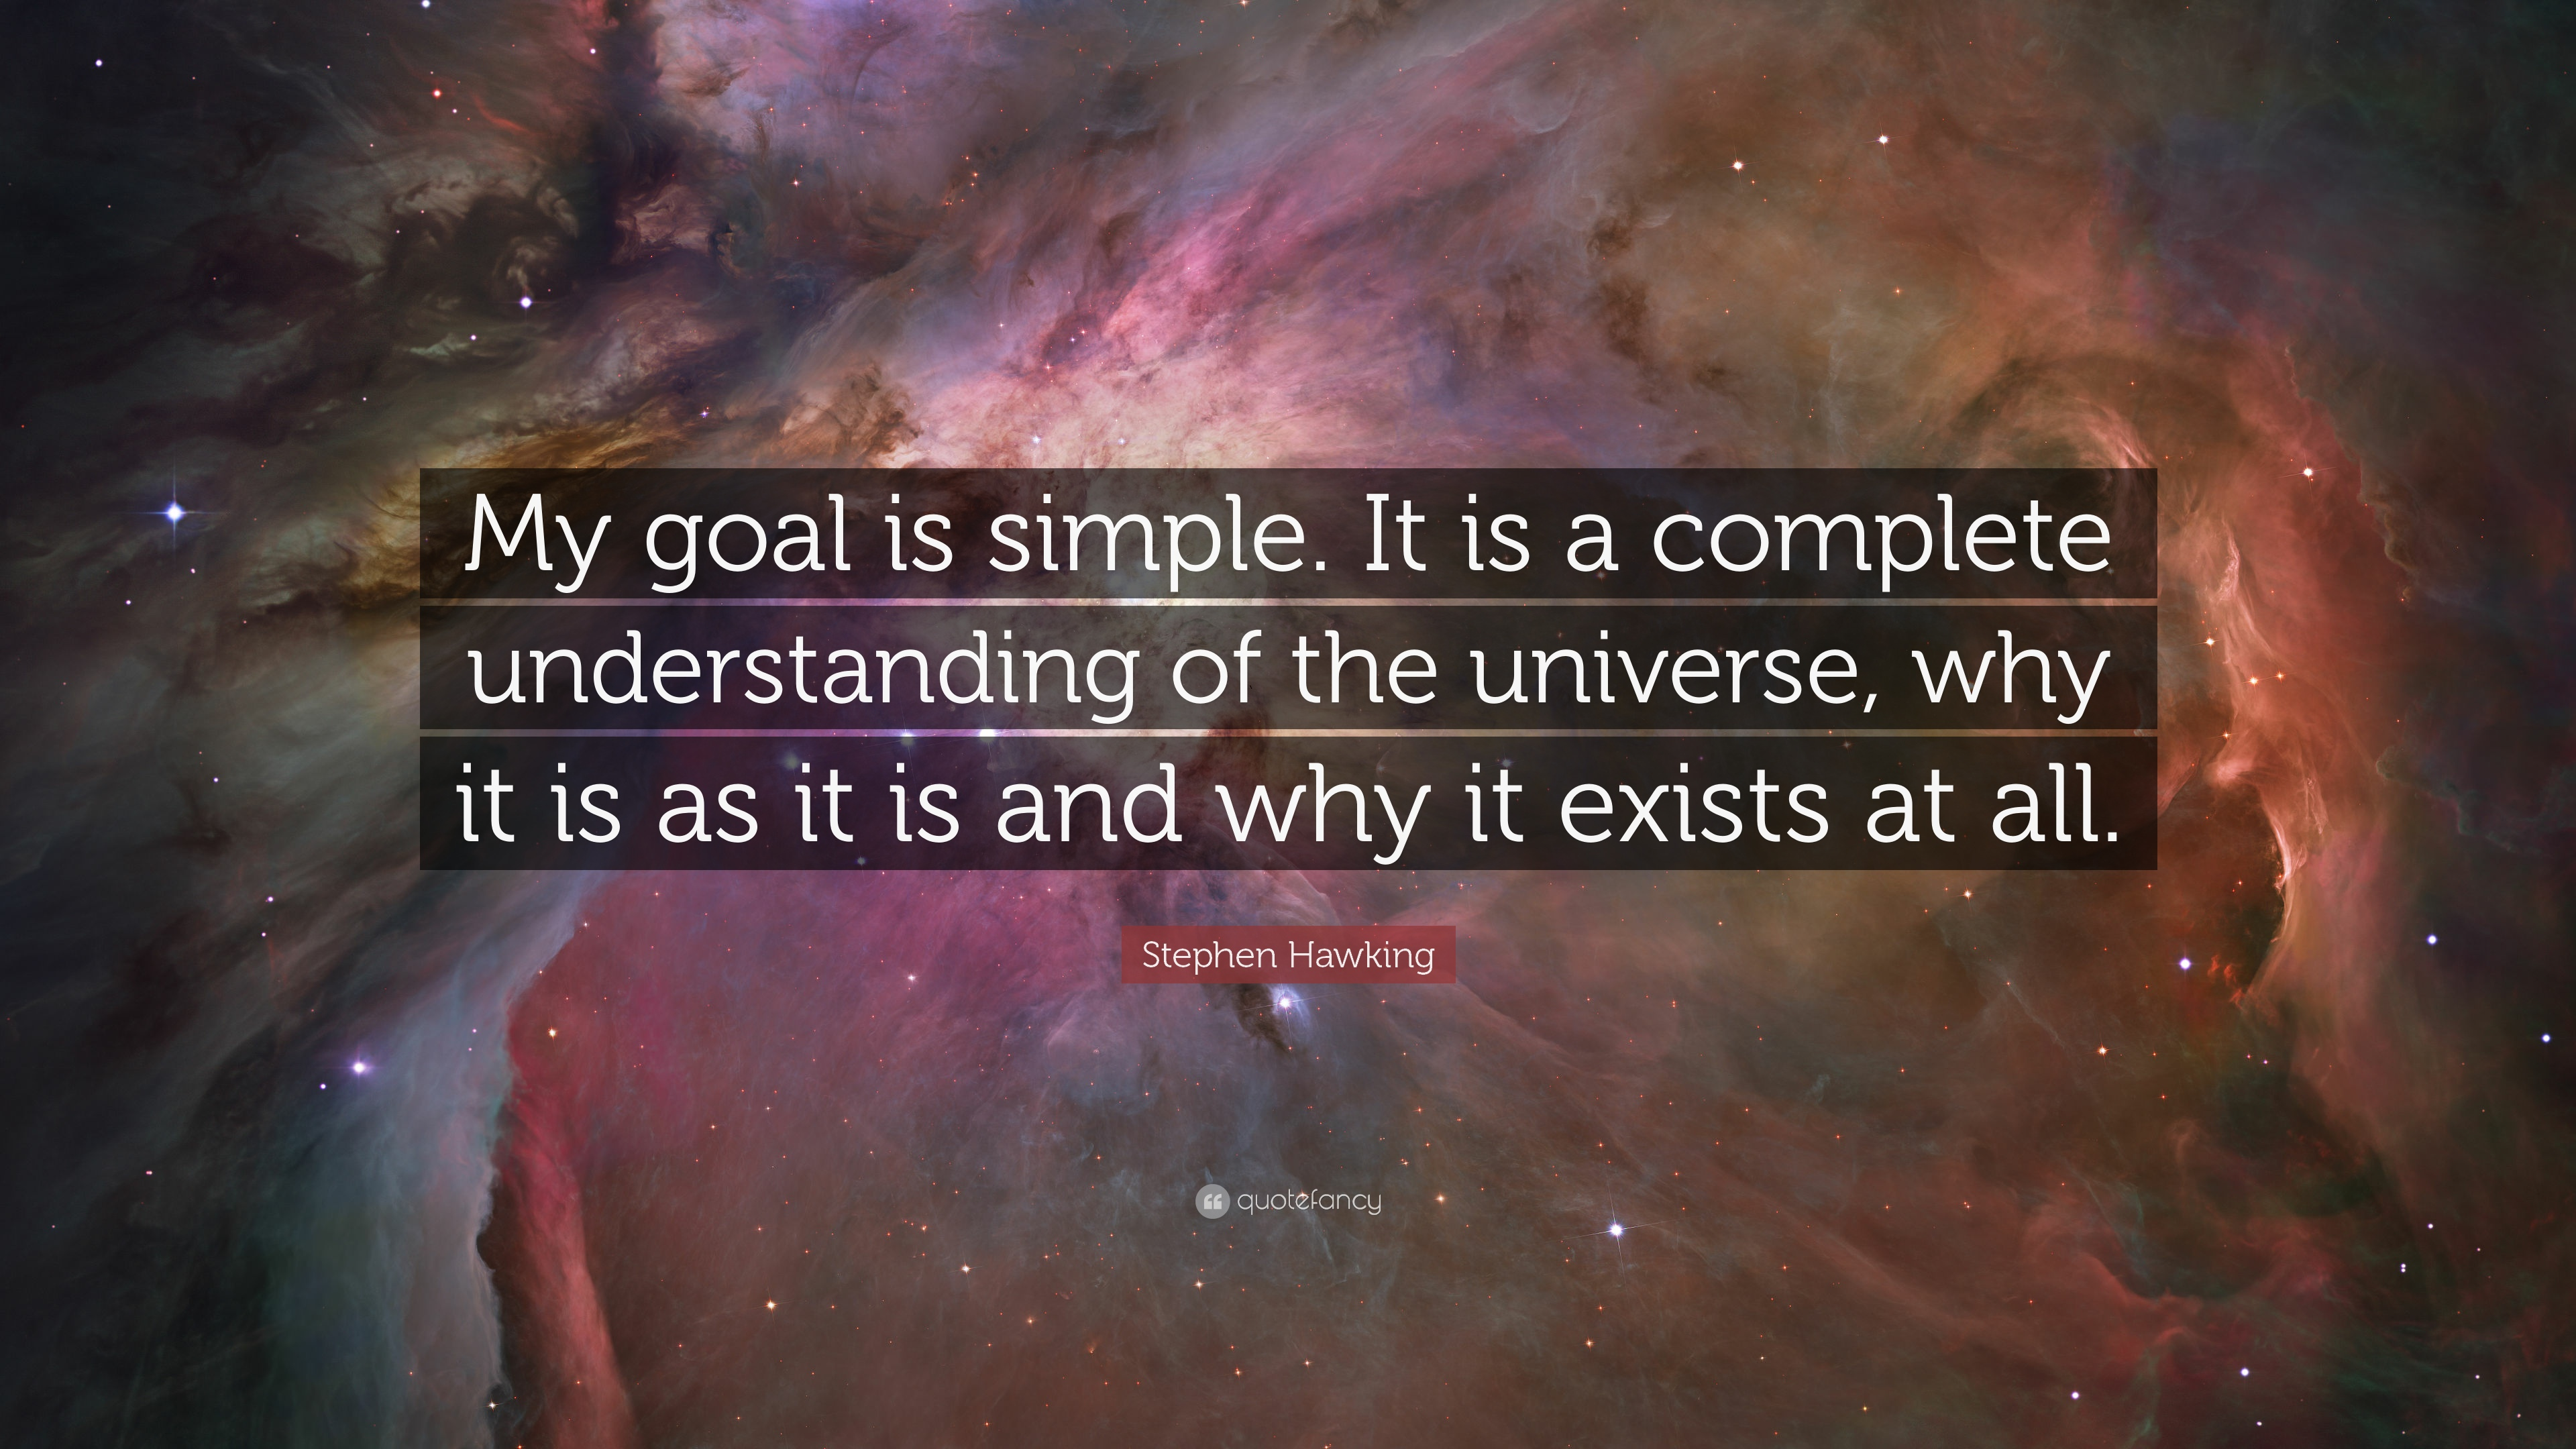 Stephen Hawking My Goal Is Simple Quote